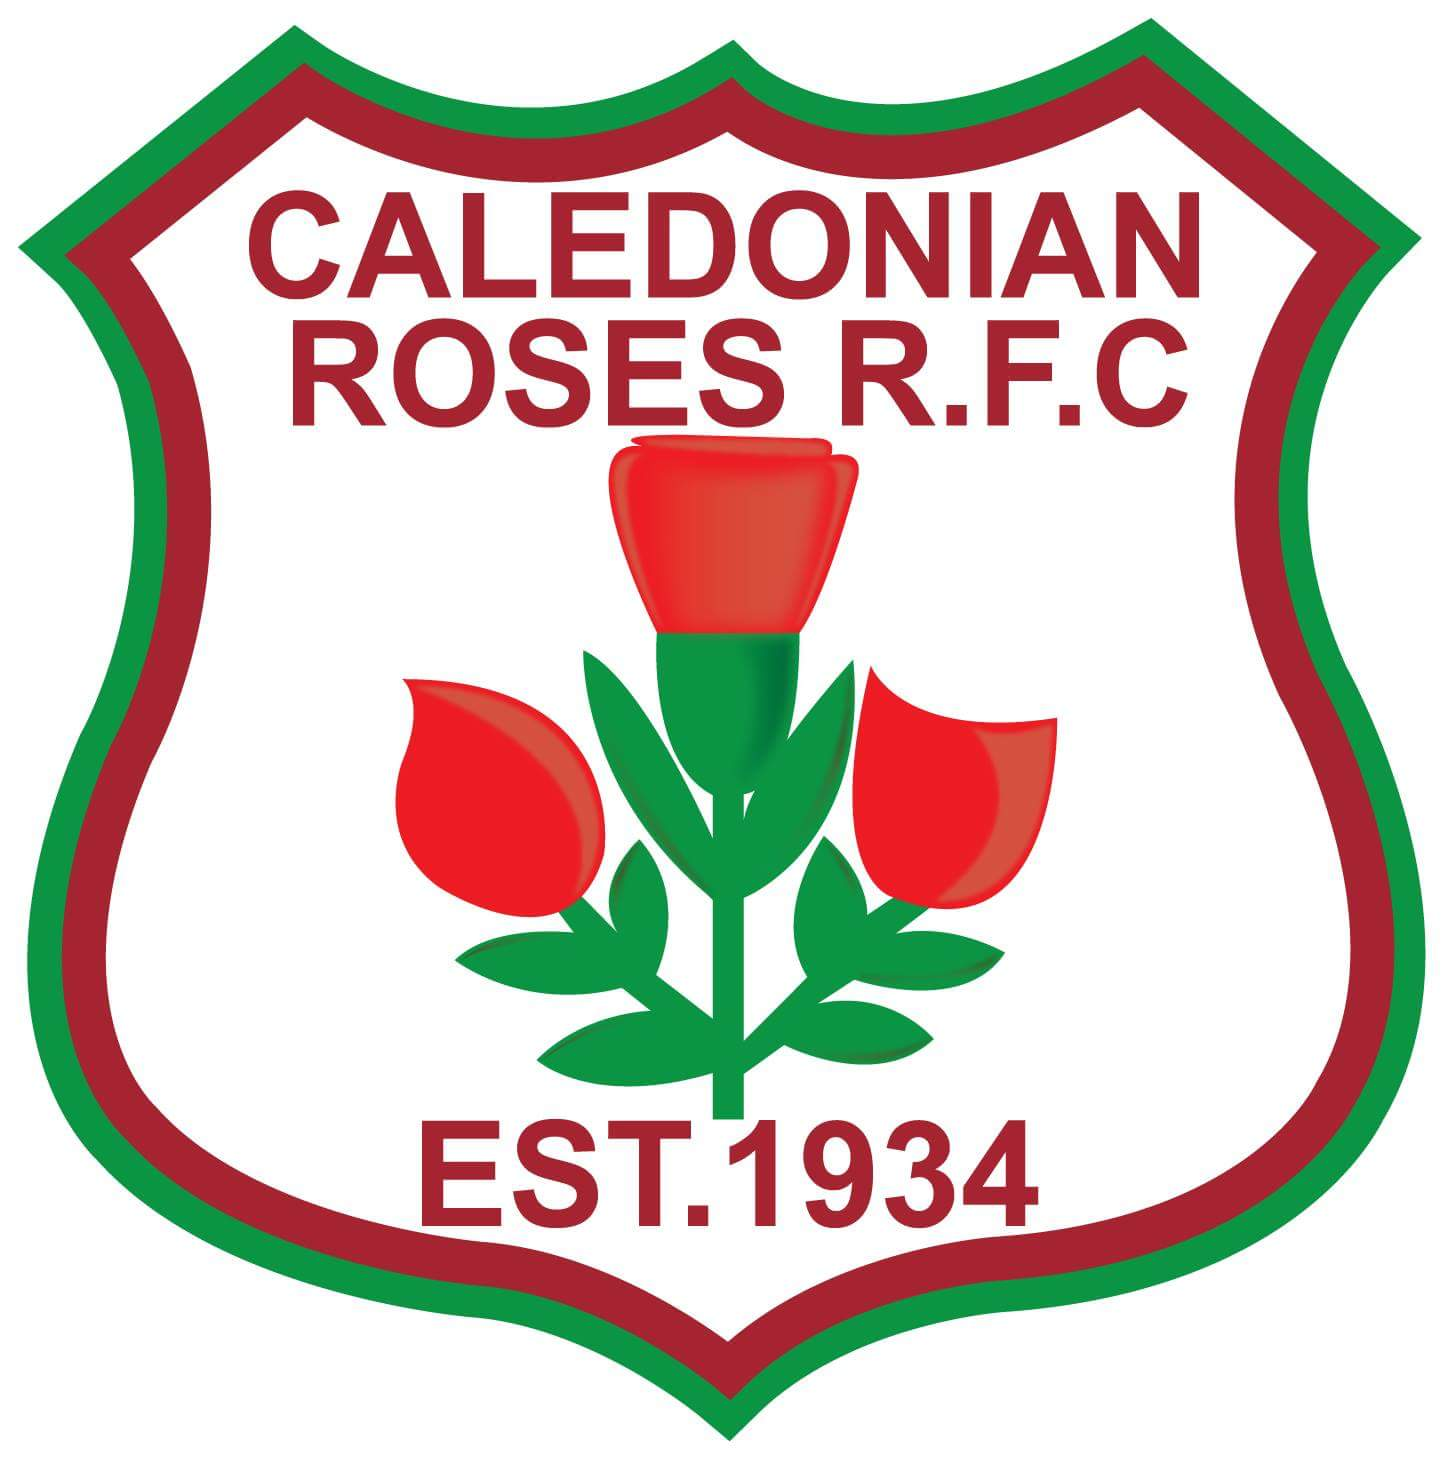 Caledonian Roses Rugby Football Club